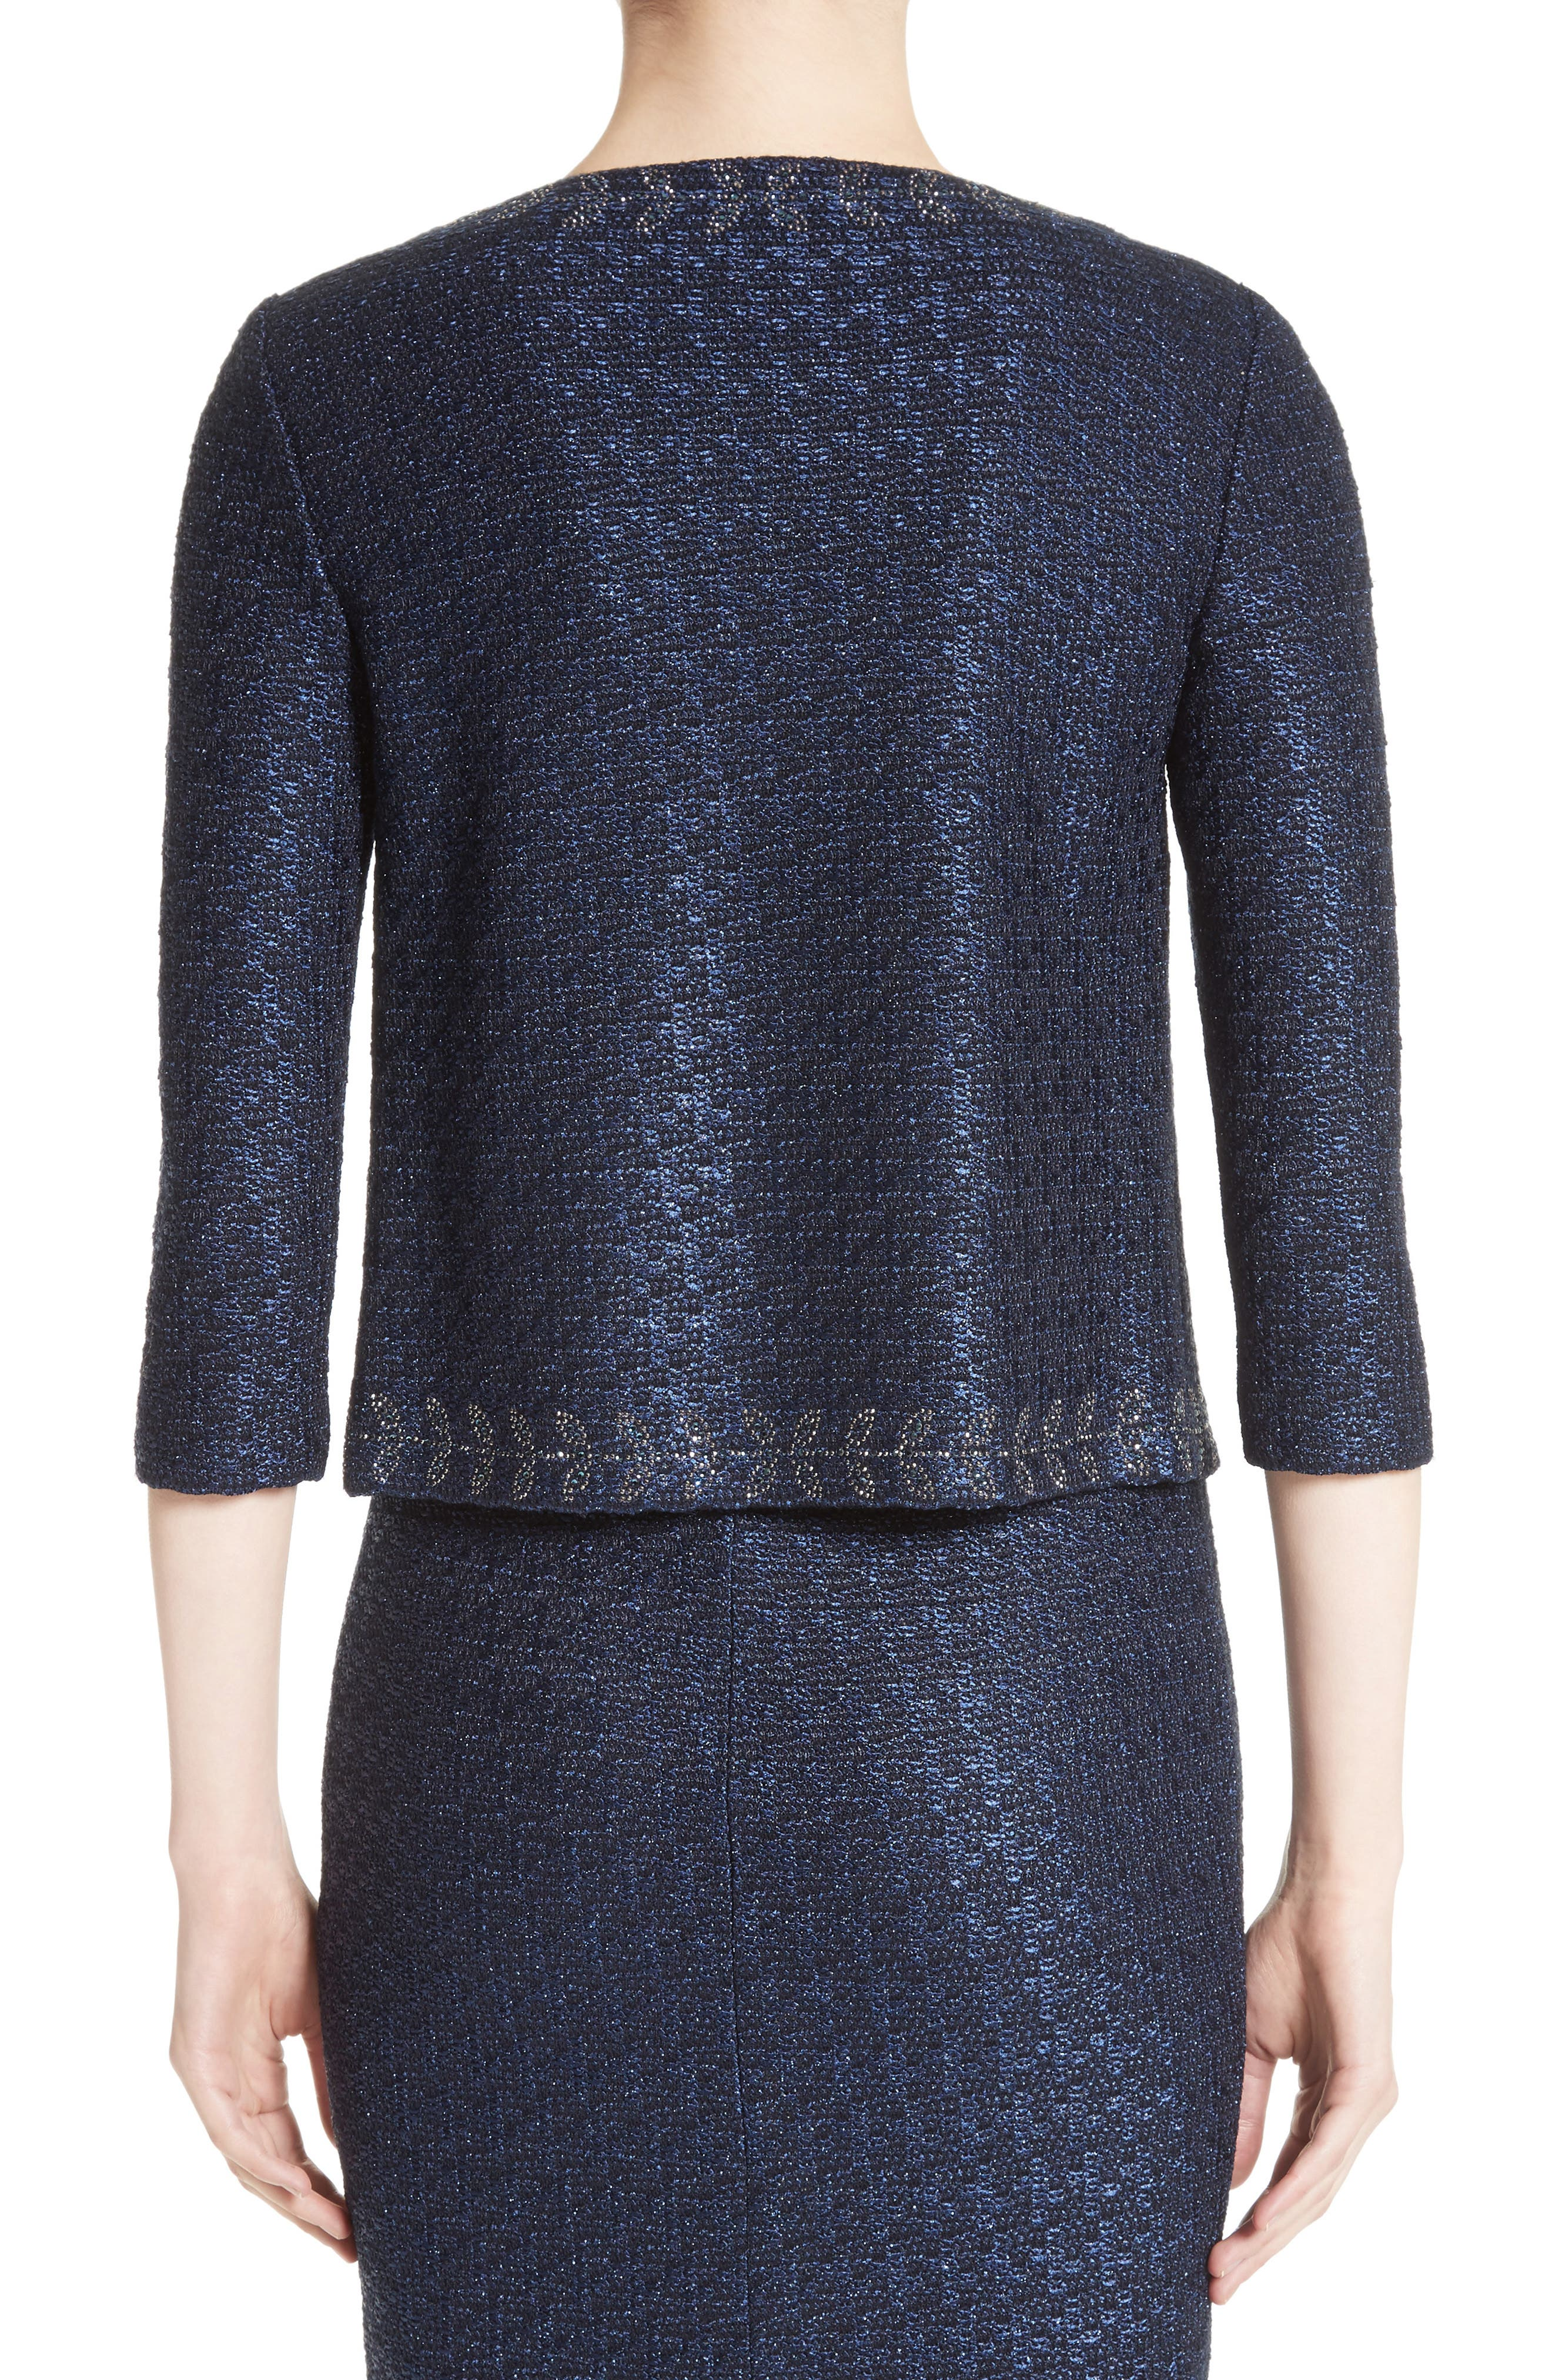 Alternate Image 2  - St. John Collection Jiya Sparkle Knit Jacket